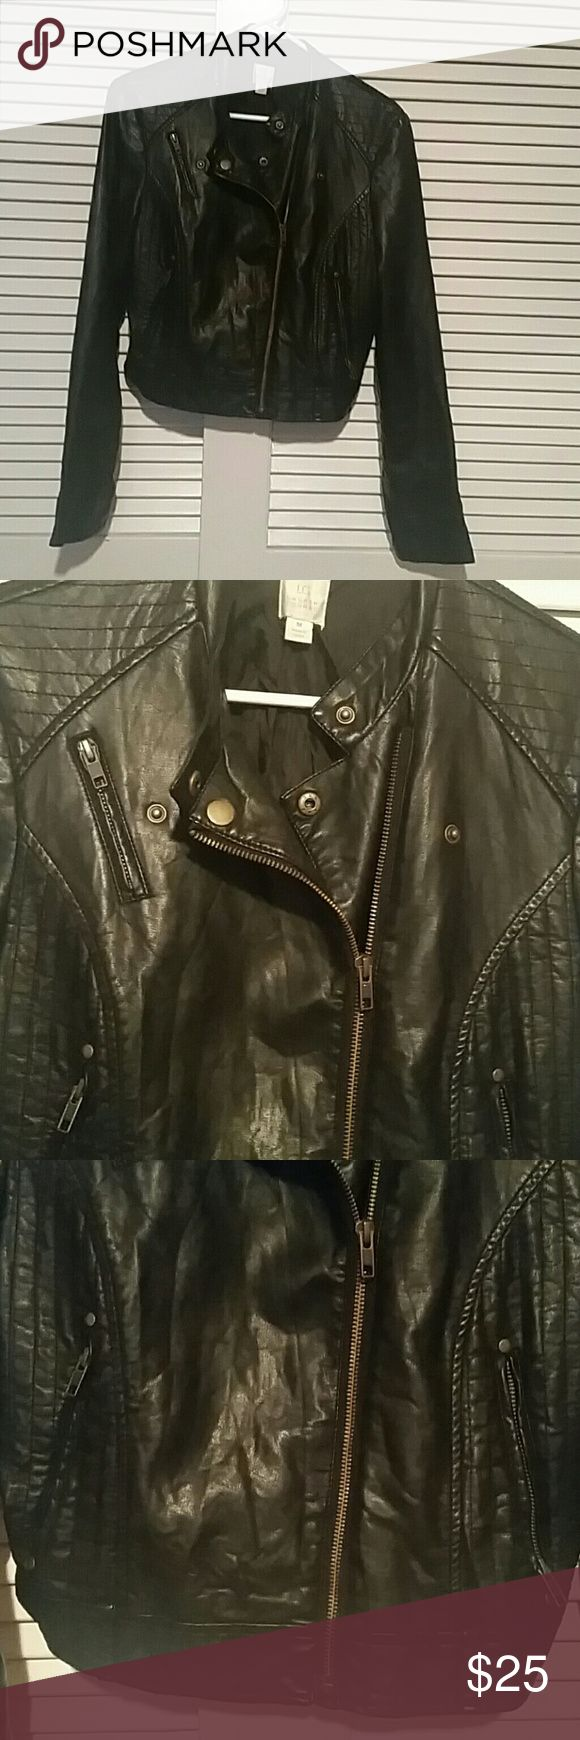 LAURA CONRAD LEATHER JACKET Soft blk leather jacket med. Laura Conrad Jackets & Coats